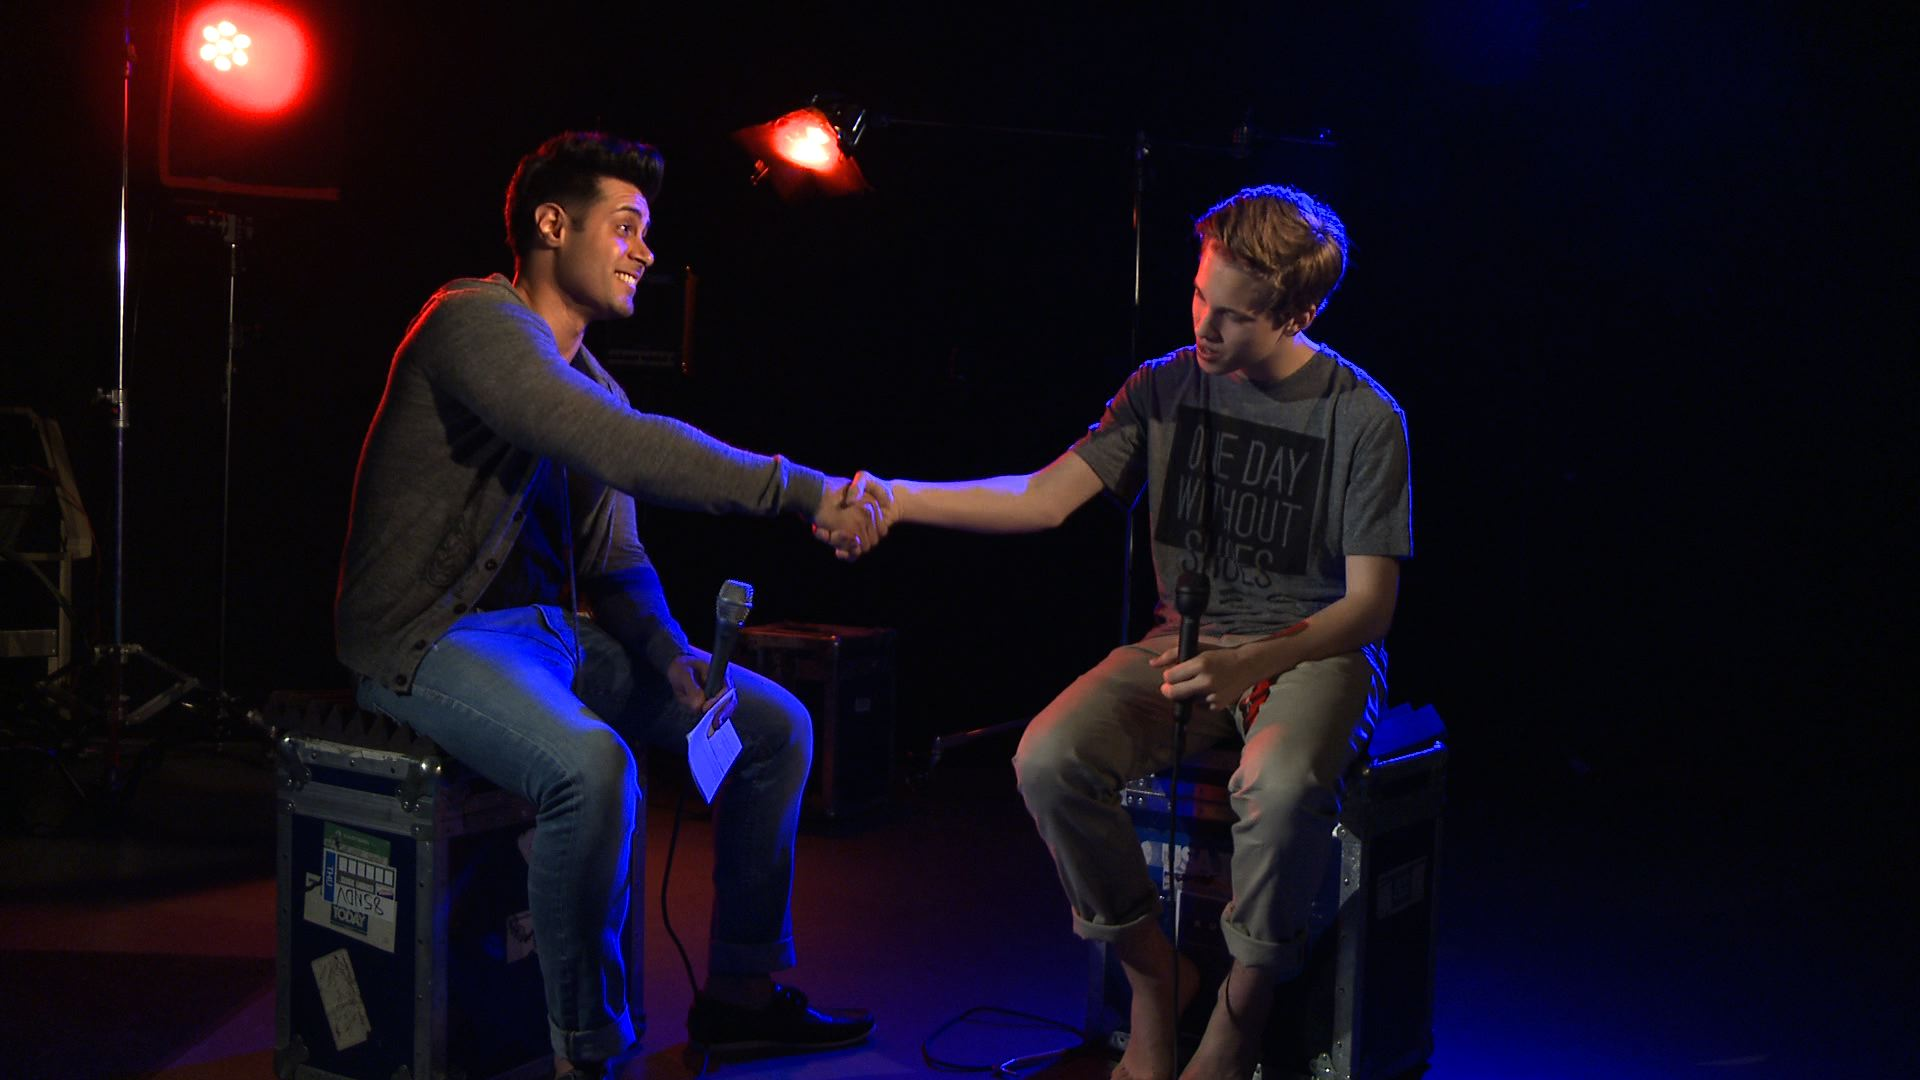 Interview with internet sensation Ryan Beatty